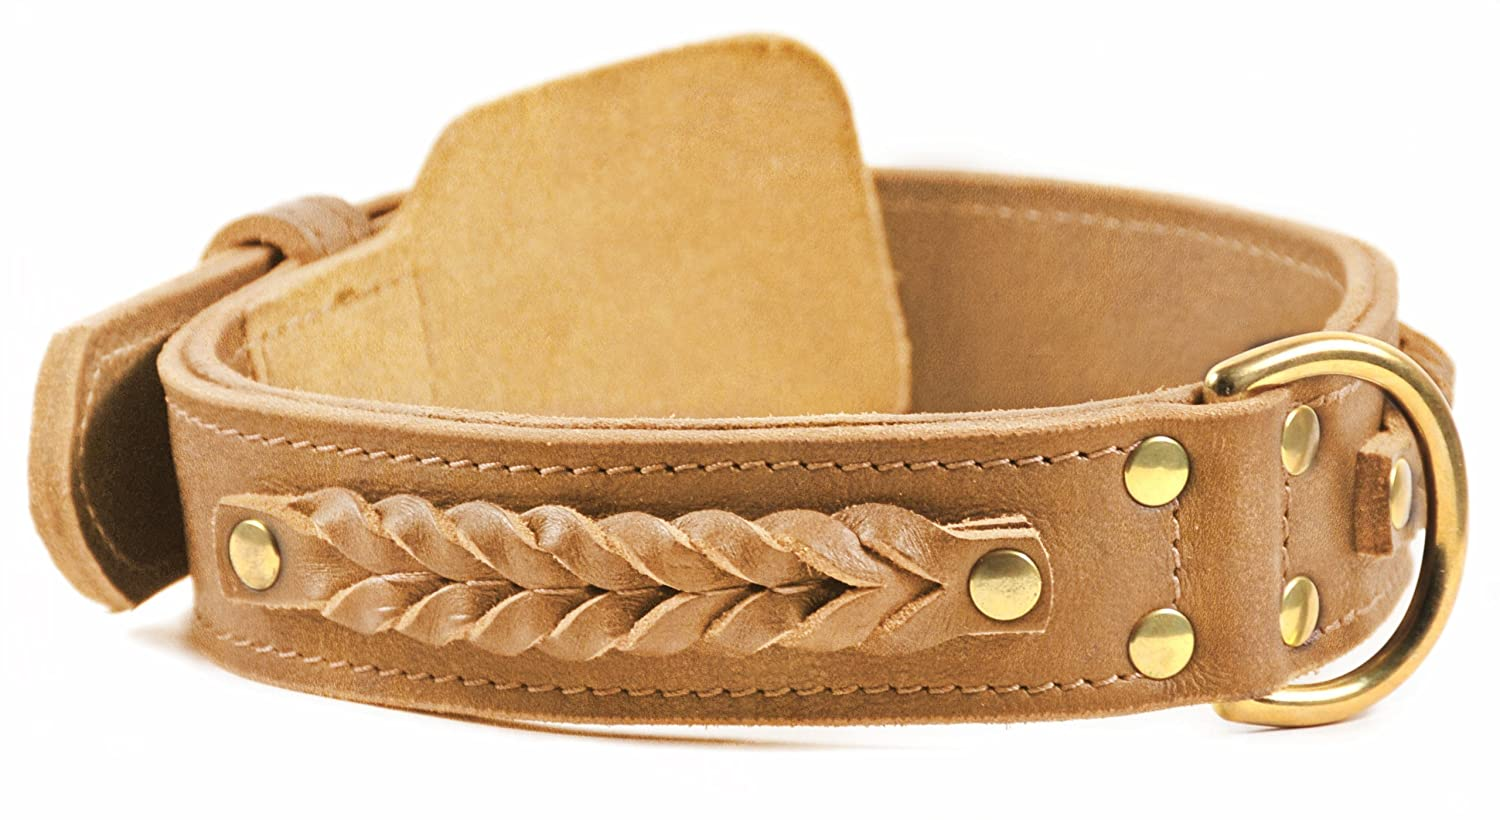 Dean and Tyler BRAIDED HEAVEN , Leather Dog Collar with Solid Brass Hardware Tan Size 24-Inch by 1-3 4-Inch Fits Neck 22-Inch to 26-Inch